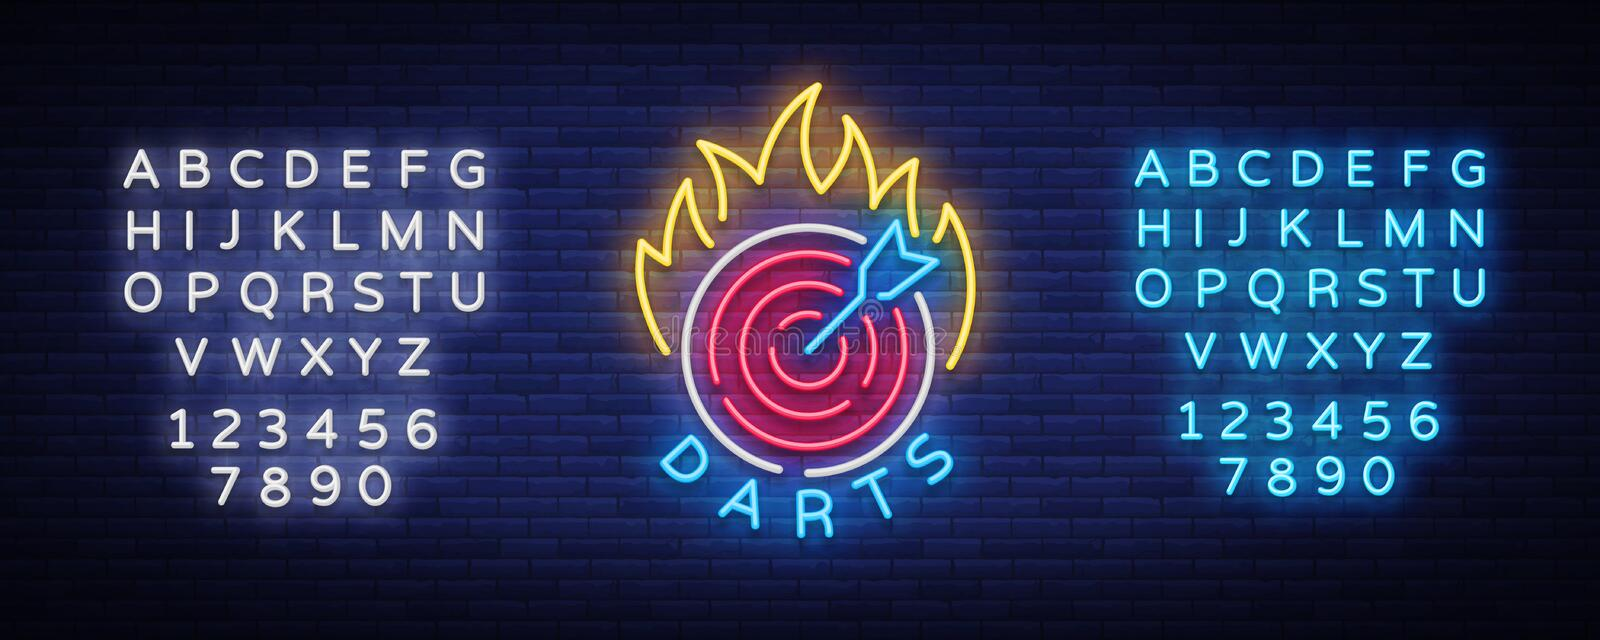 Darts Logo in Neon Style. Neon Sign, Bright Night Advertising, Light Banner. Vecton illustration. Editing text neon sign.  vector illustration